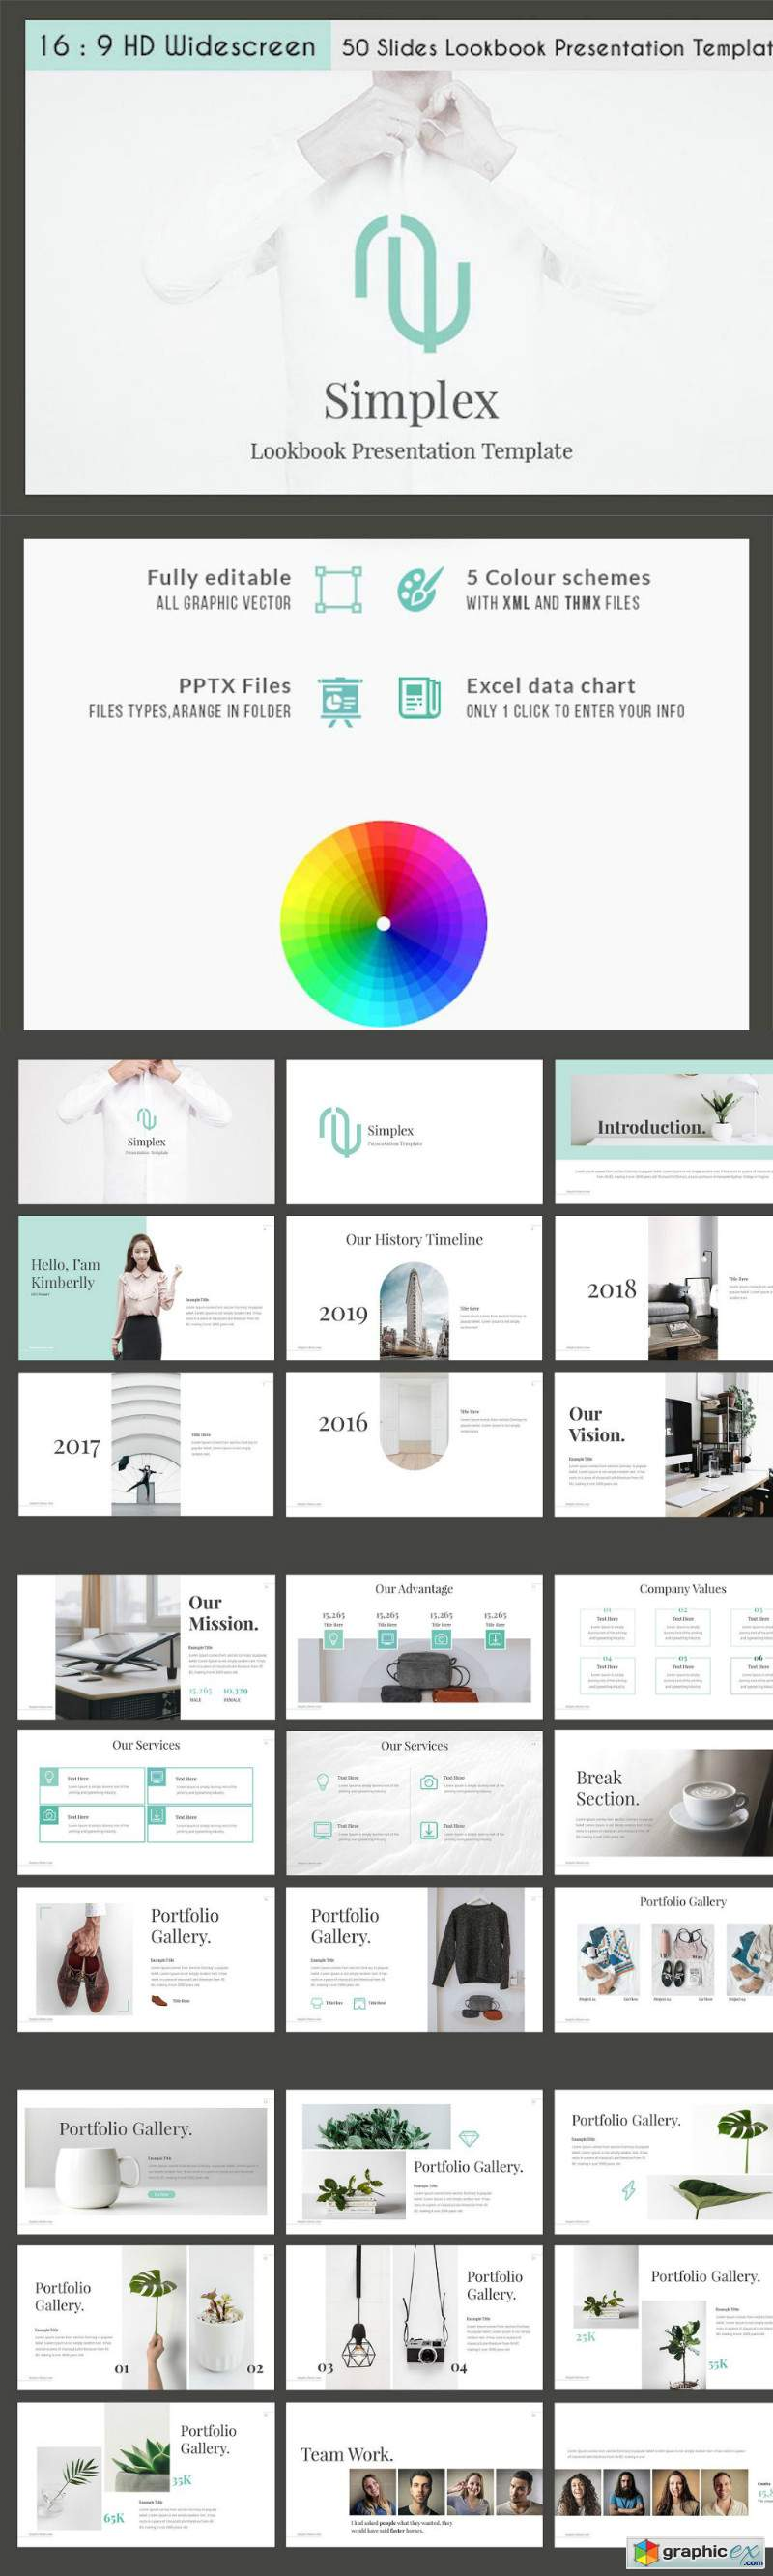 Simplex - Lookbook PPTX Template